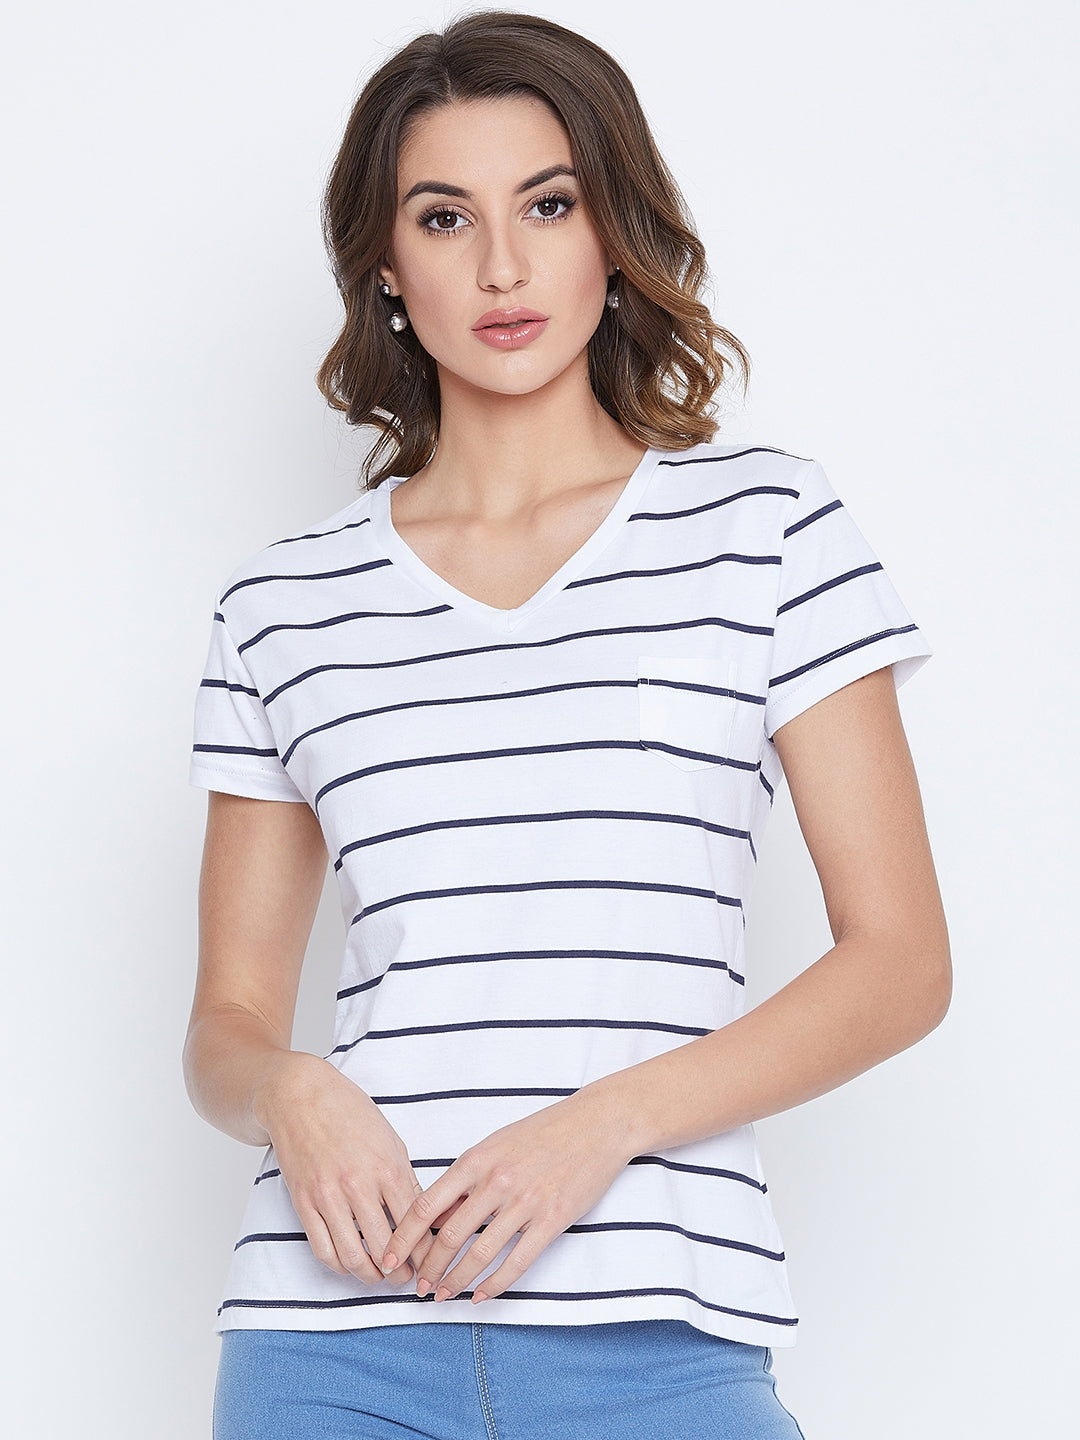 JUMP USA Women Navy Blue Striped V-neck T-shirt - JUMP USA